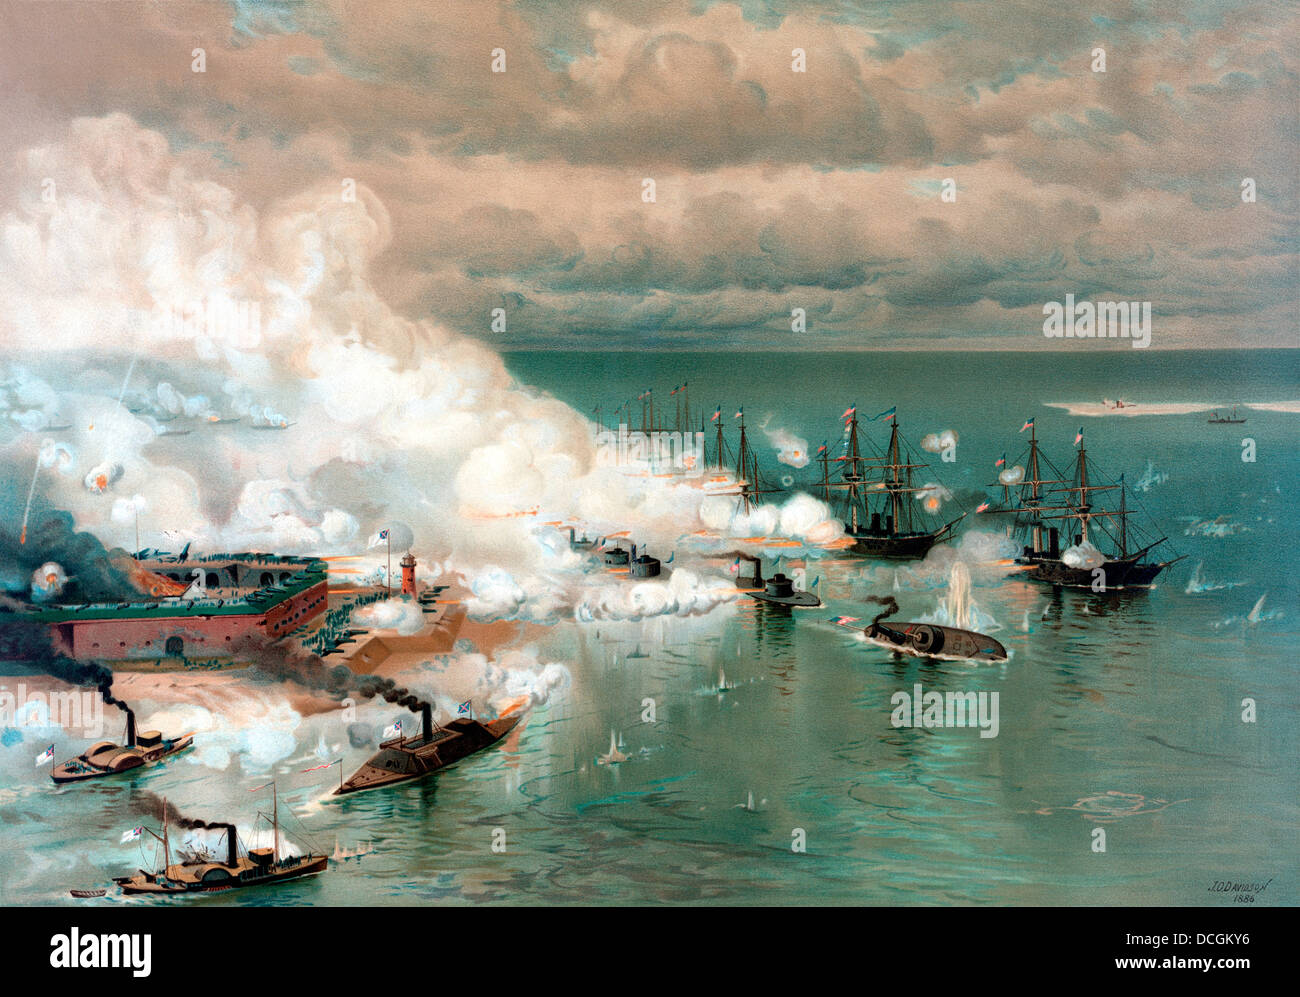 Vintage American Civil War print of The Battle of Mobile Bay, August 5, 1864. - Stock Image